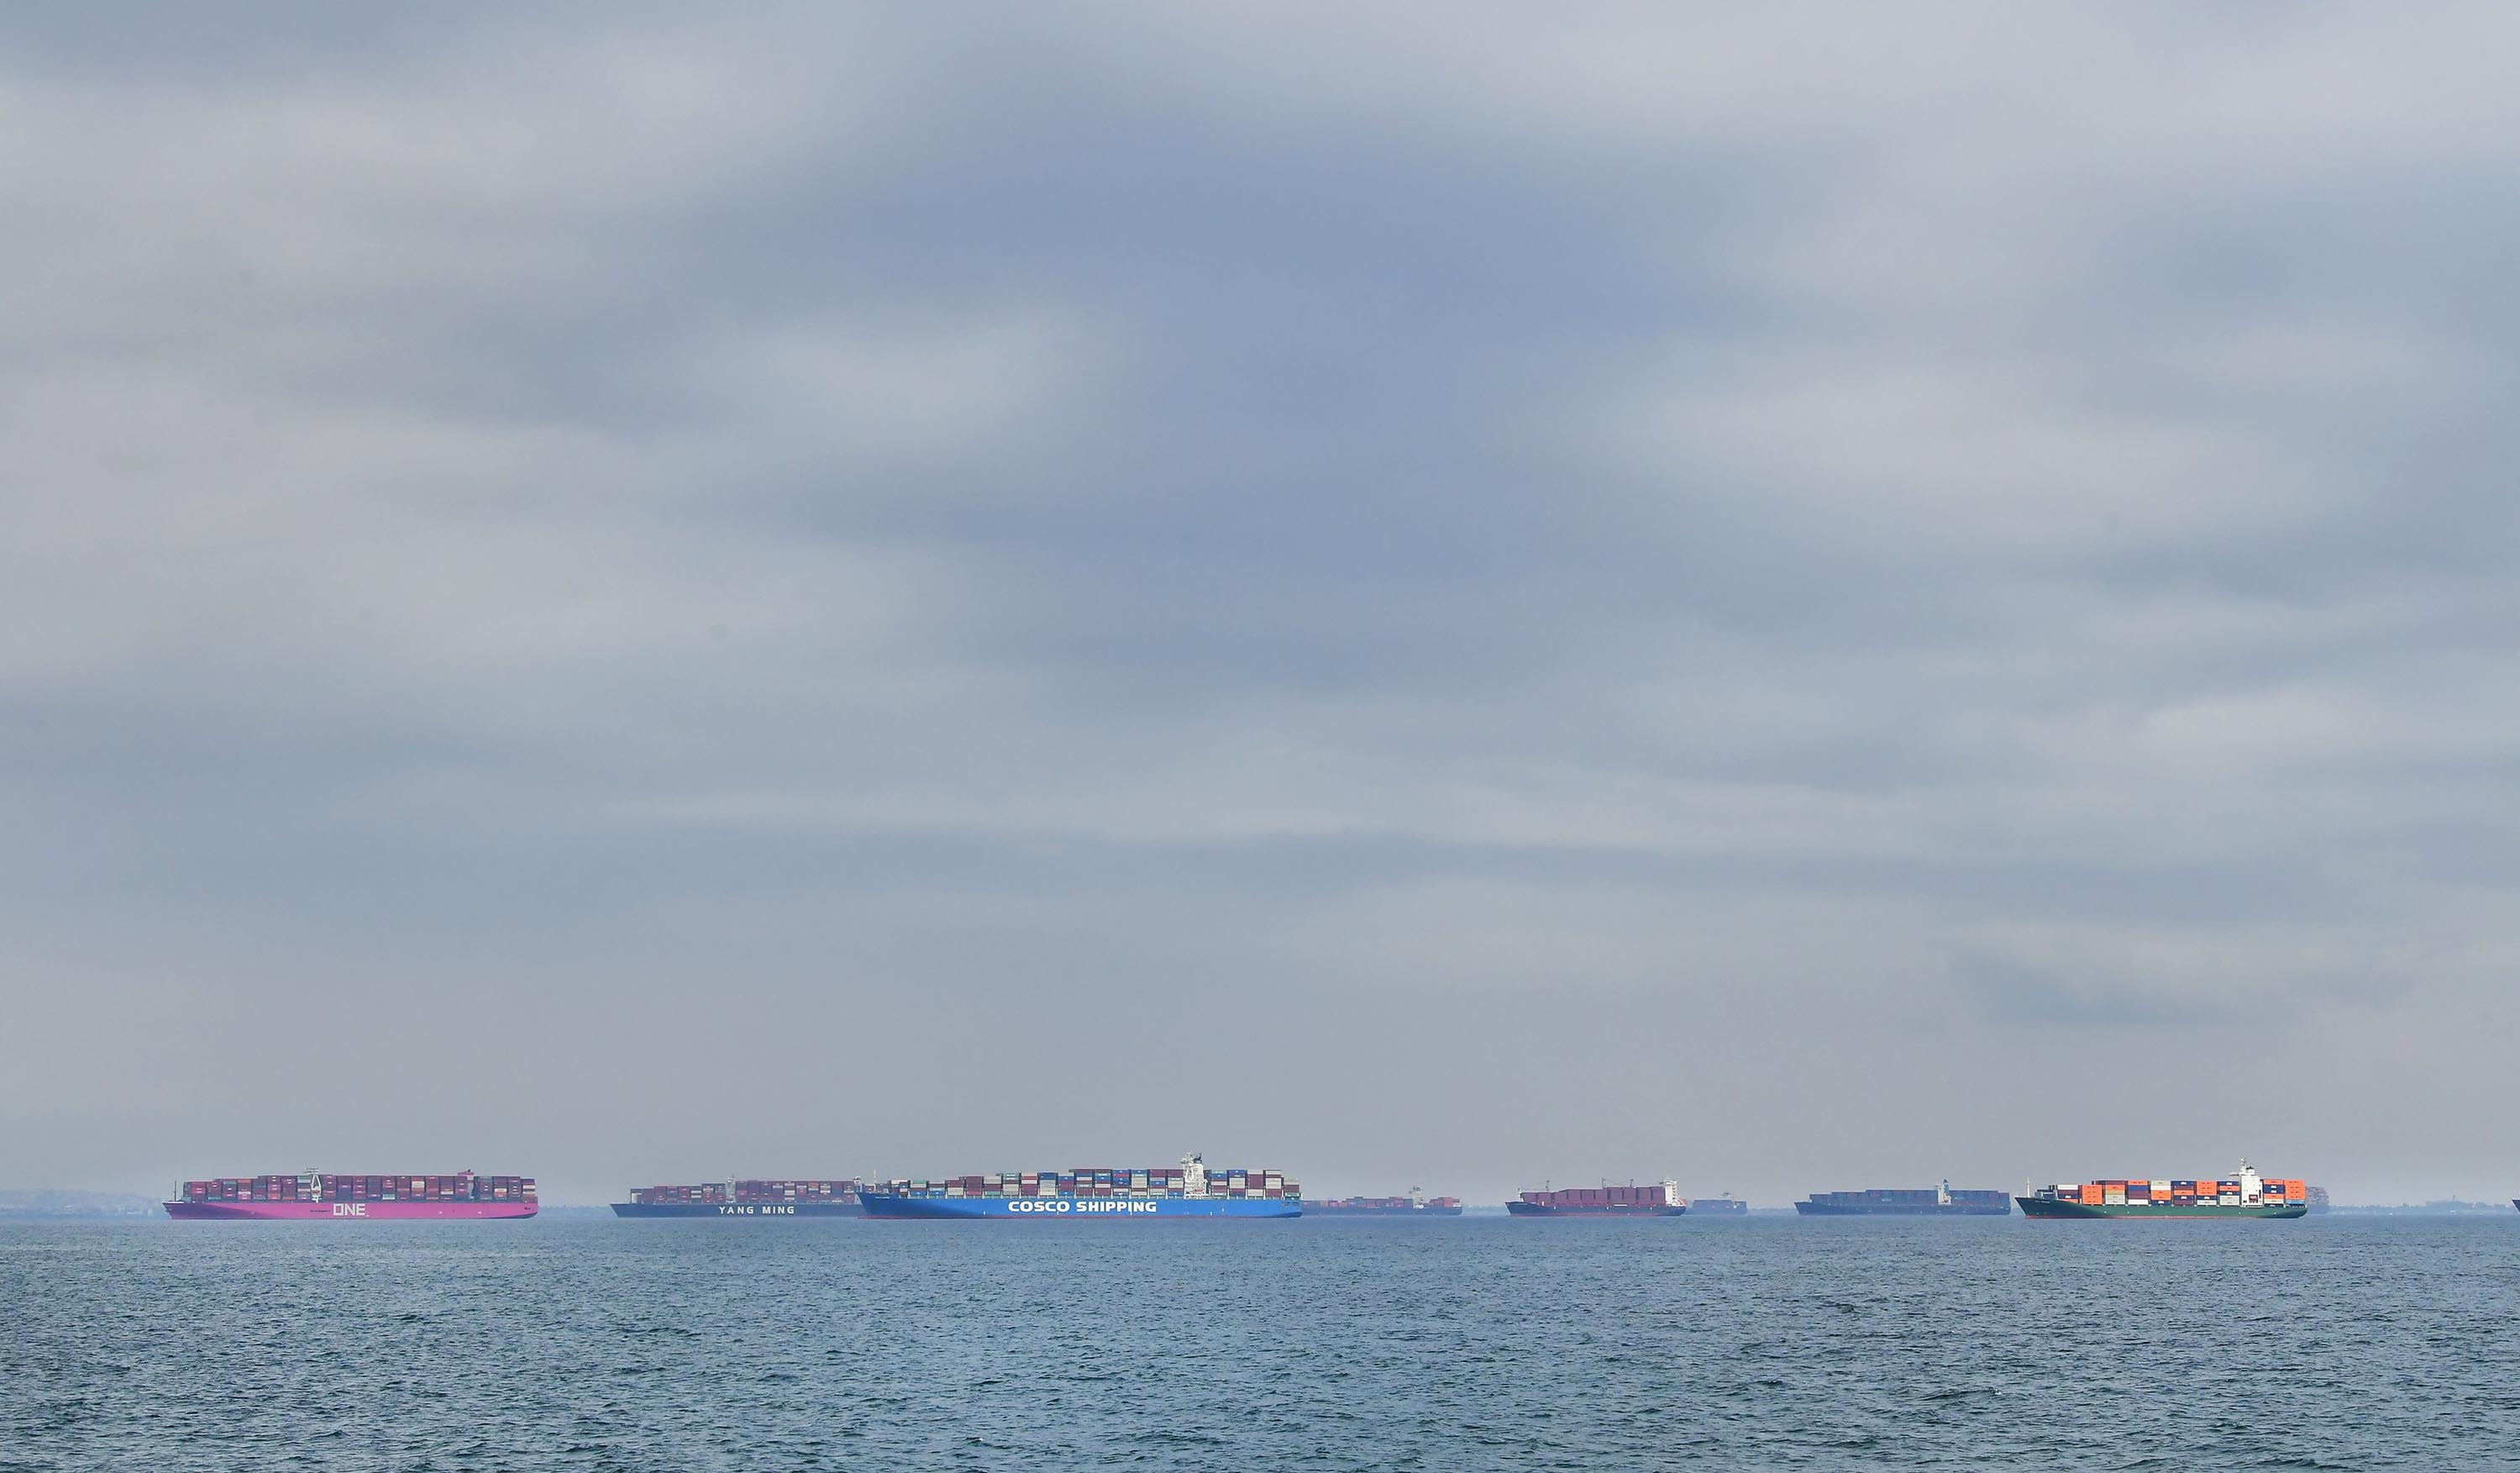 Cargo ships filled with containers wait offshore for entry to the Port of Los Angeles on October 6, 2021 in Los Angeles, California as supply chain disruptions continue to affect the US economy.